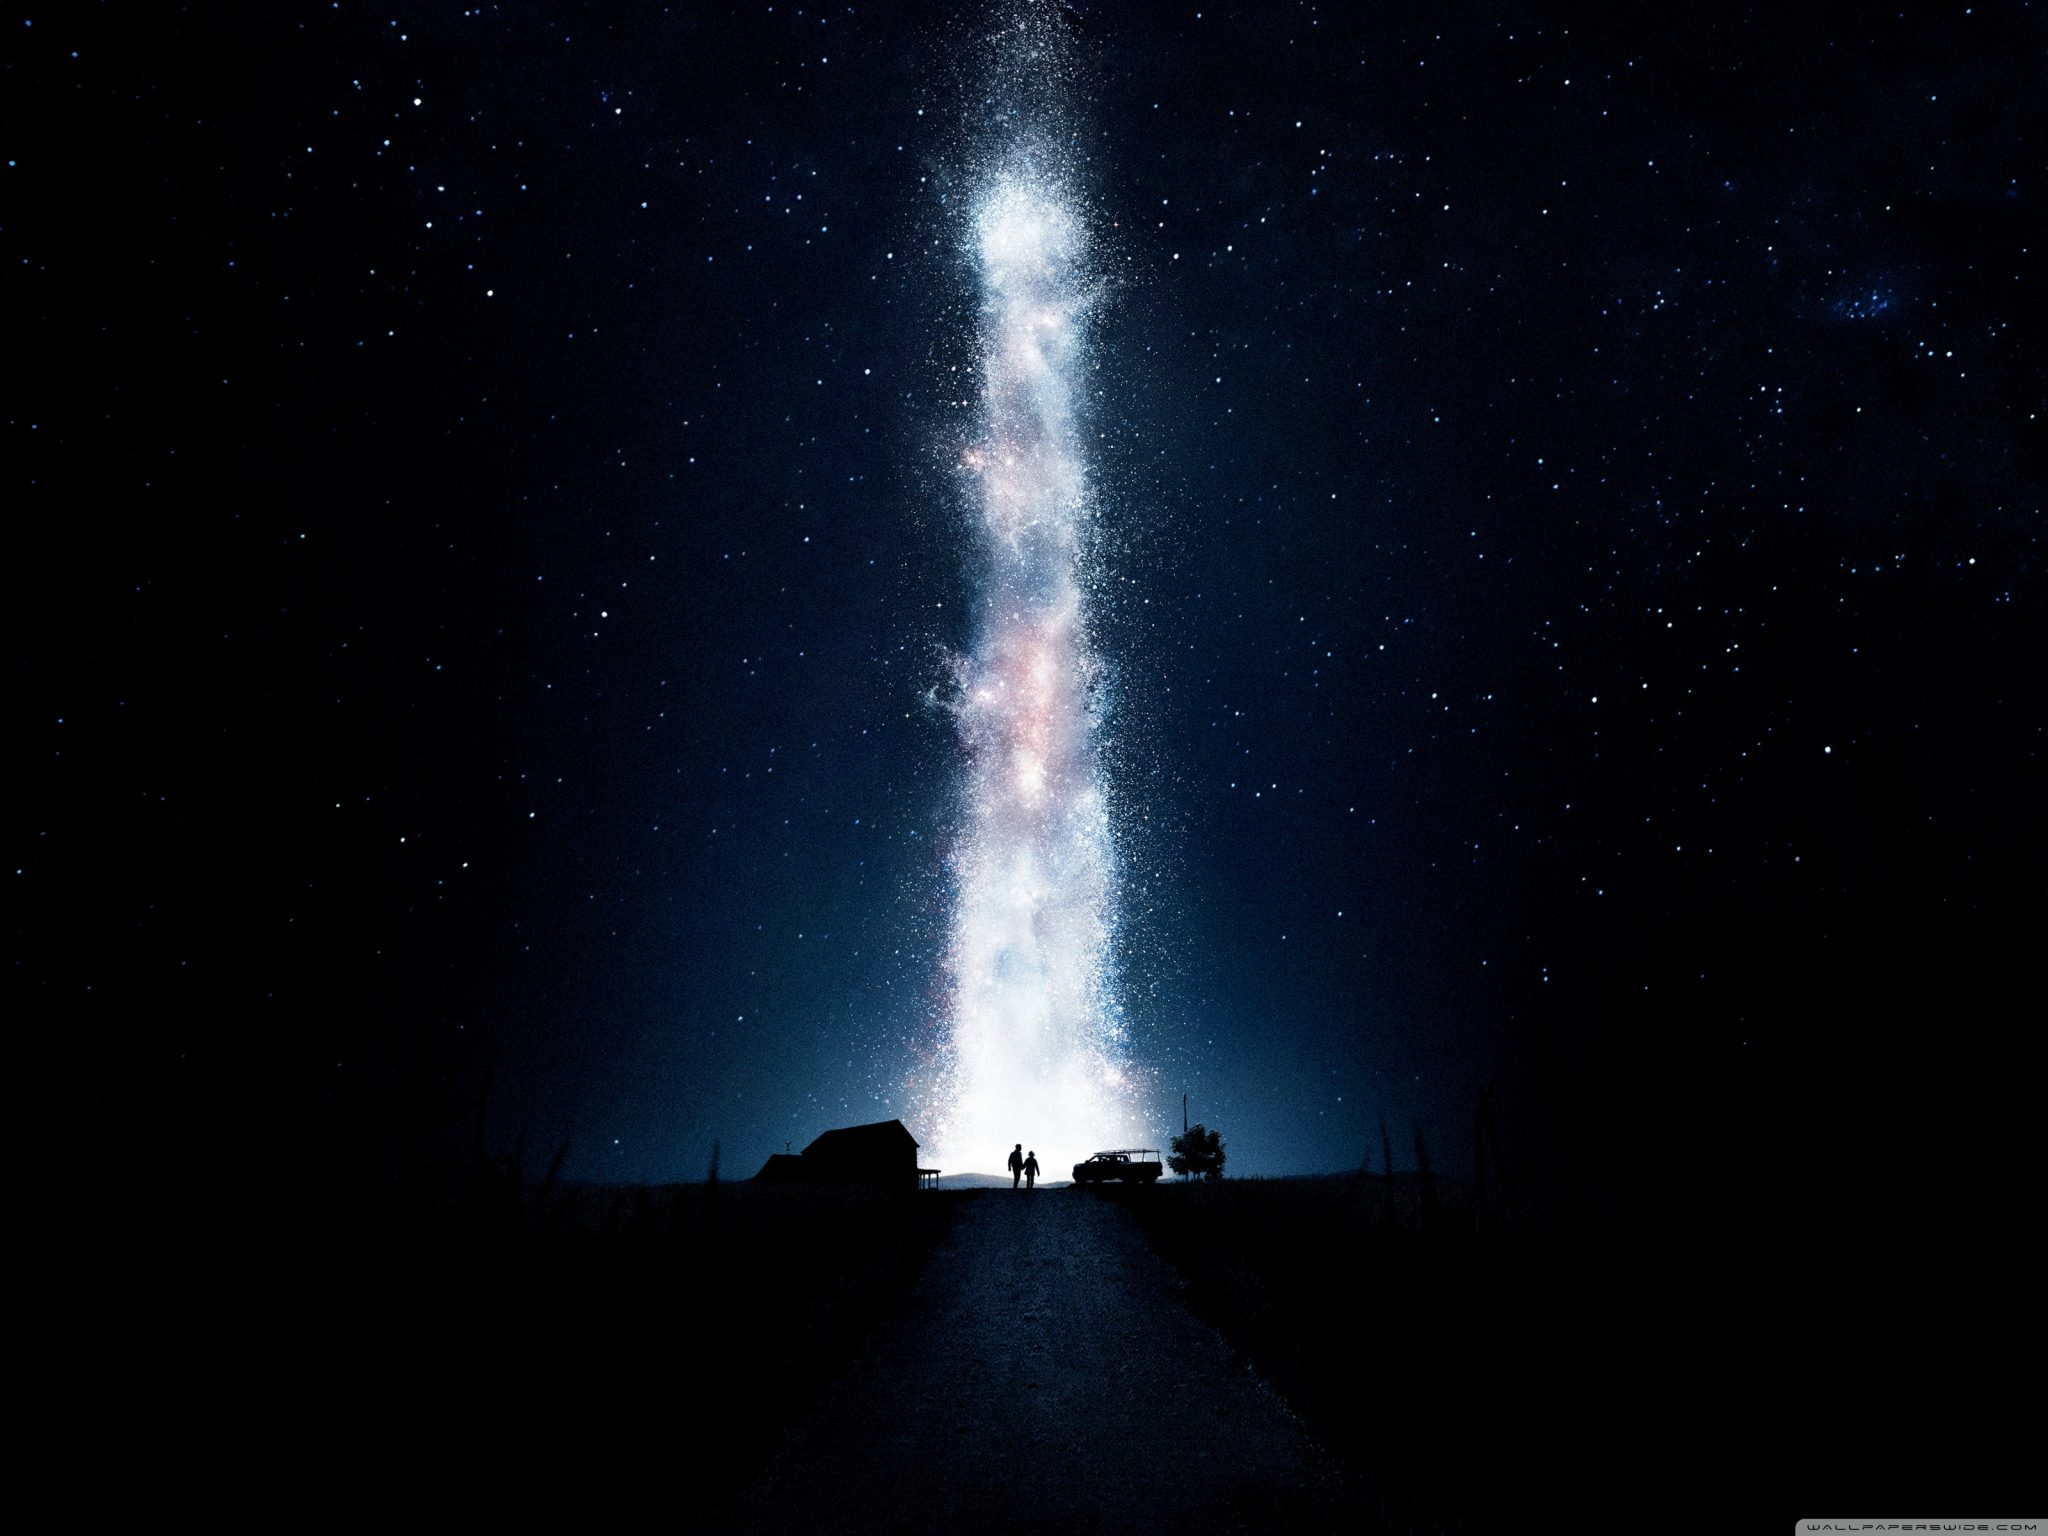 interstellar_2014-wallpaper-3200x2400